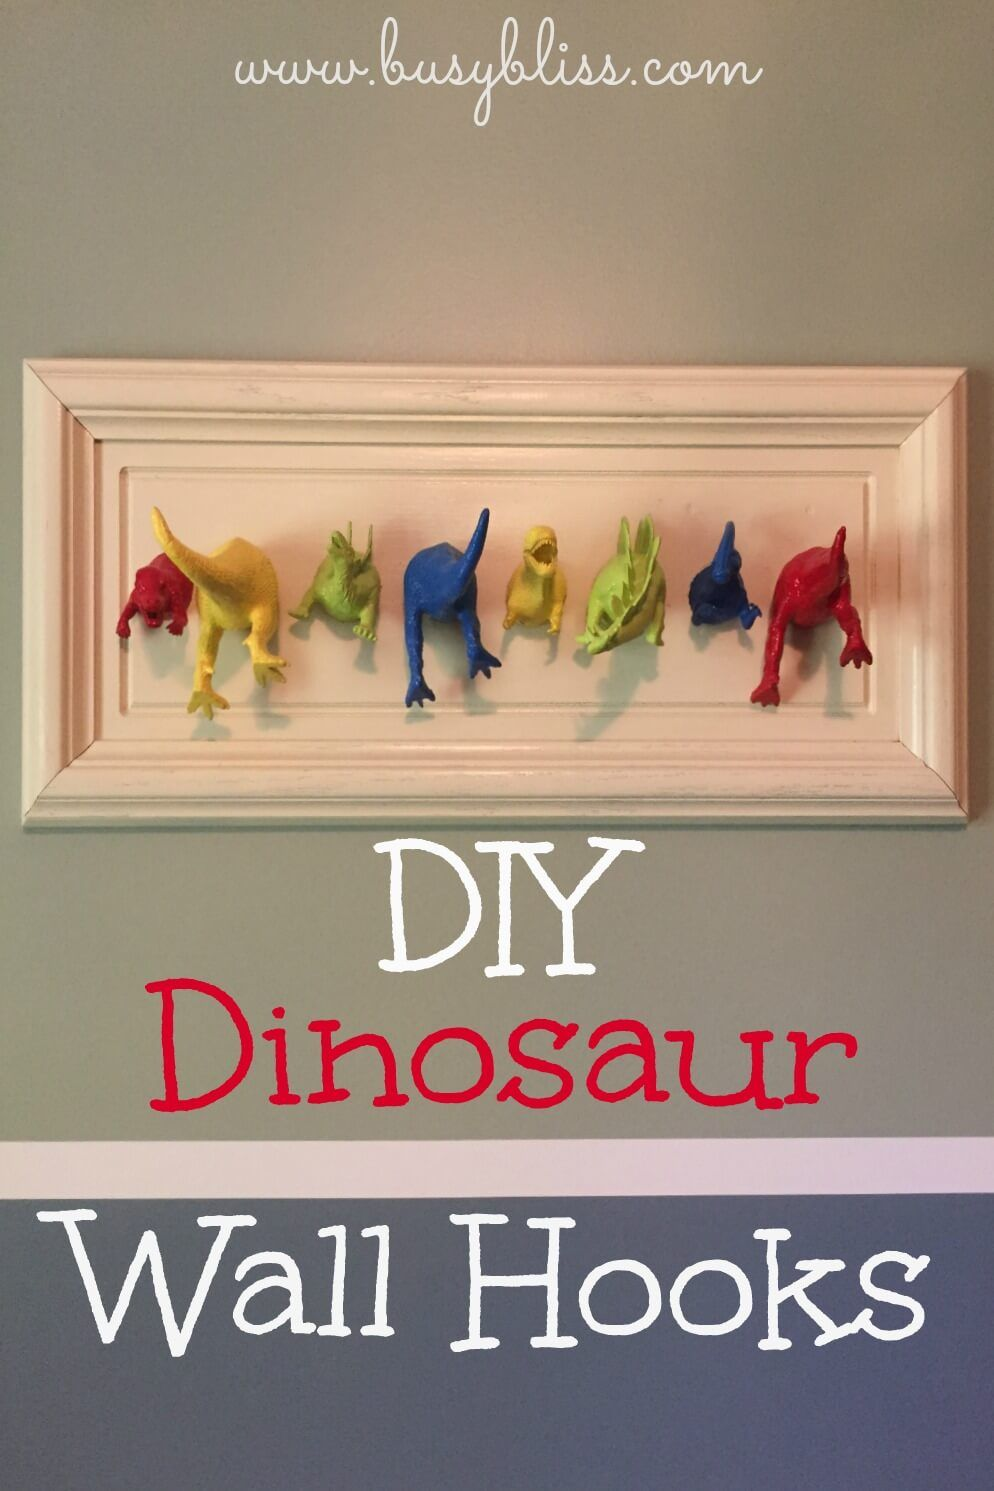 Diy Dinosaur Wall Hooks Tervinning Barnrum Och Inspiration